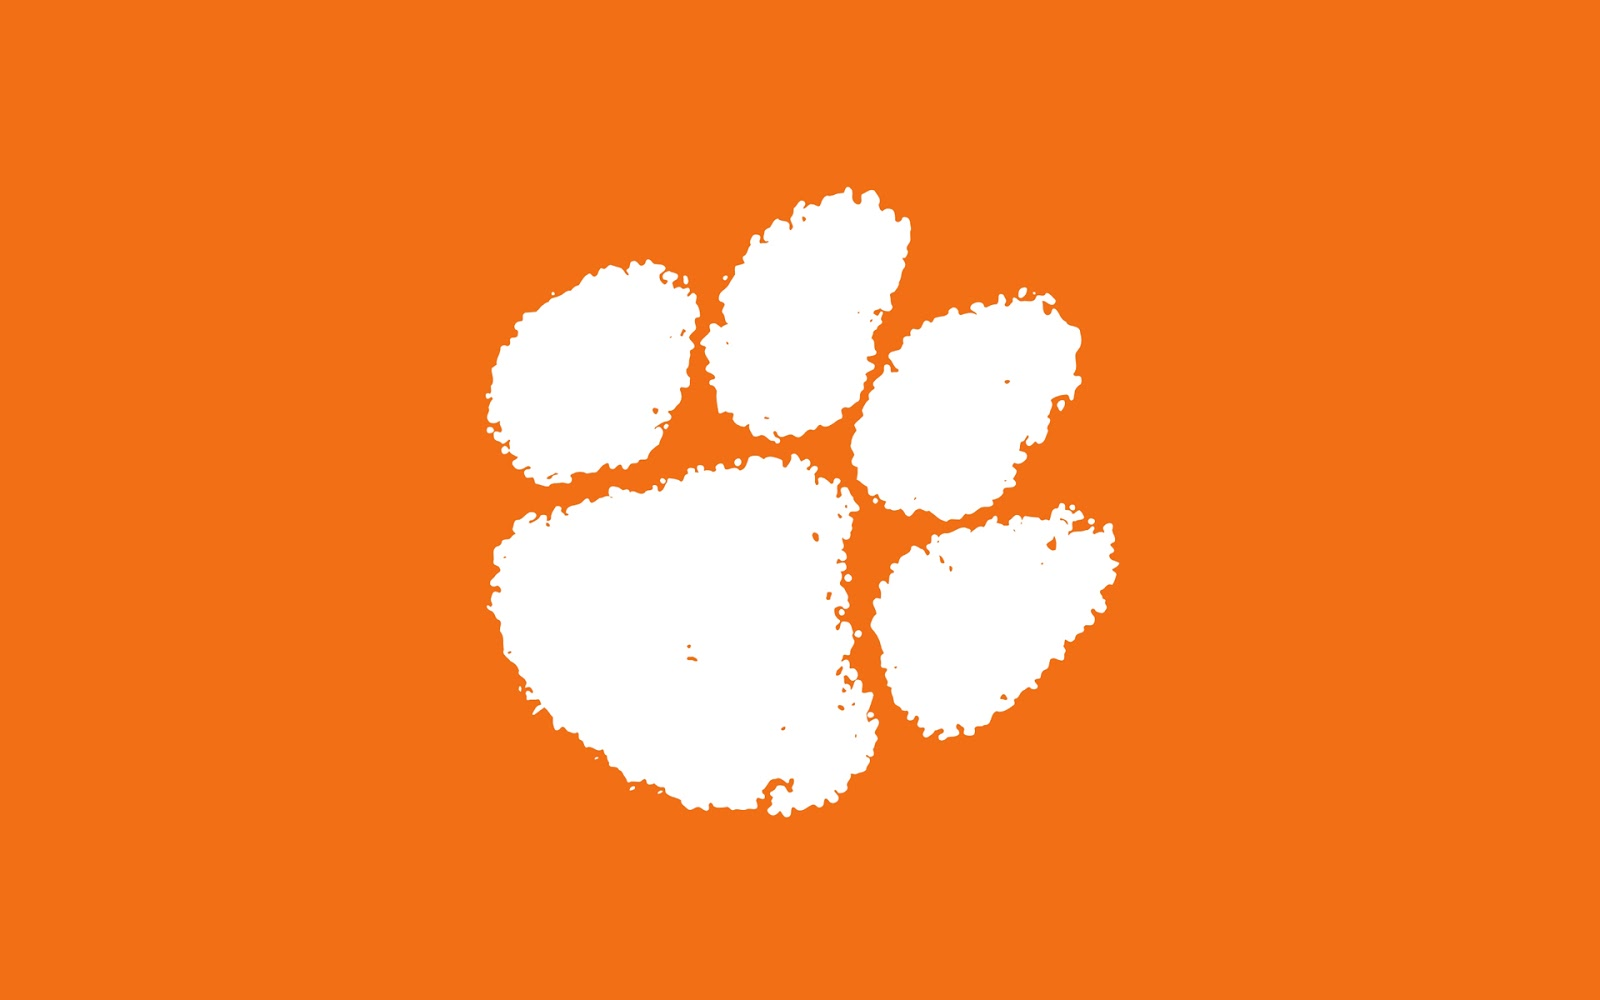 clemson tigers wallpaper themes video search engine at